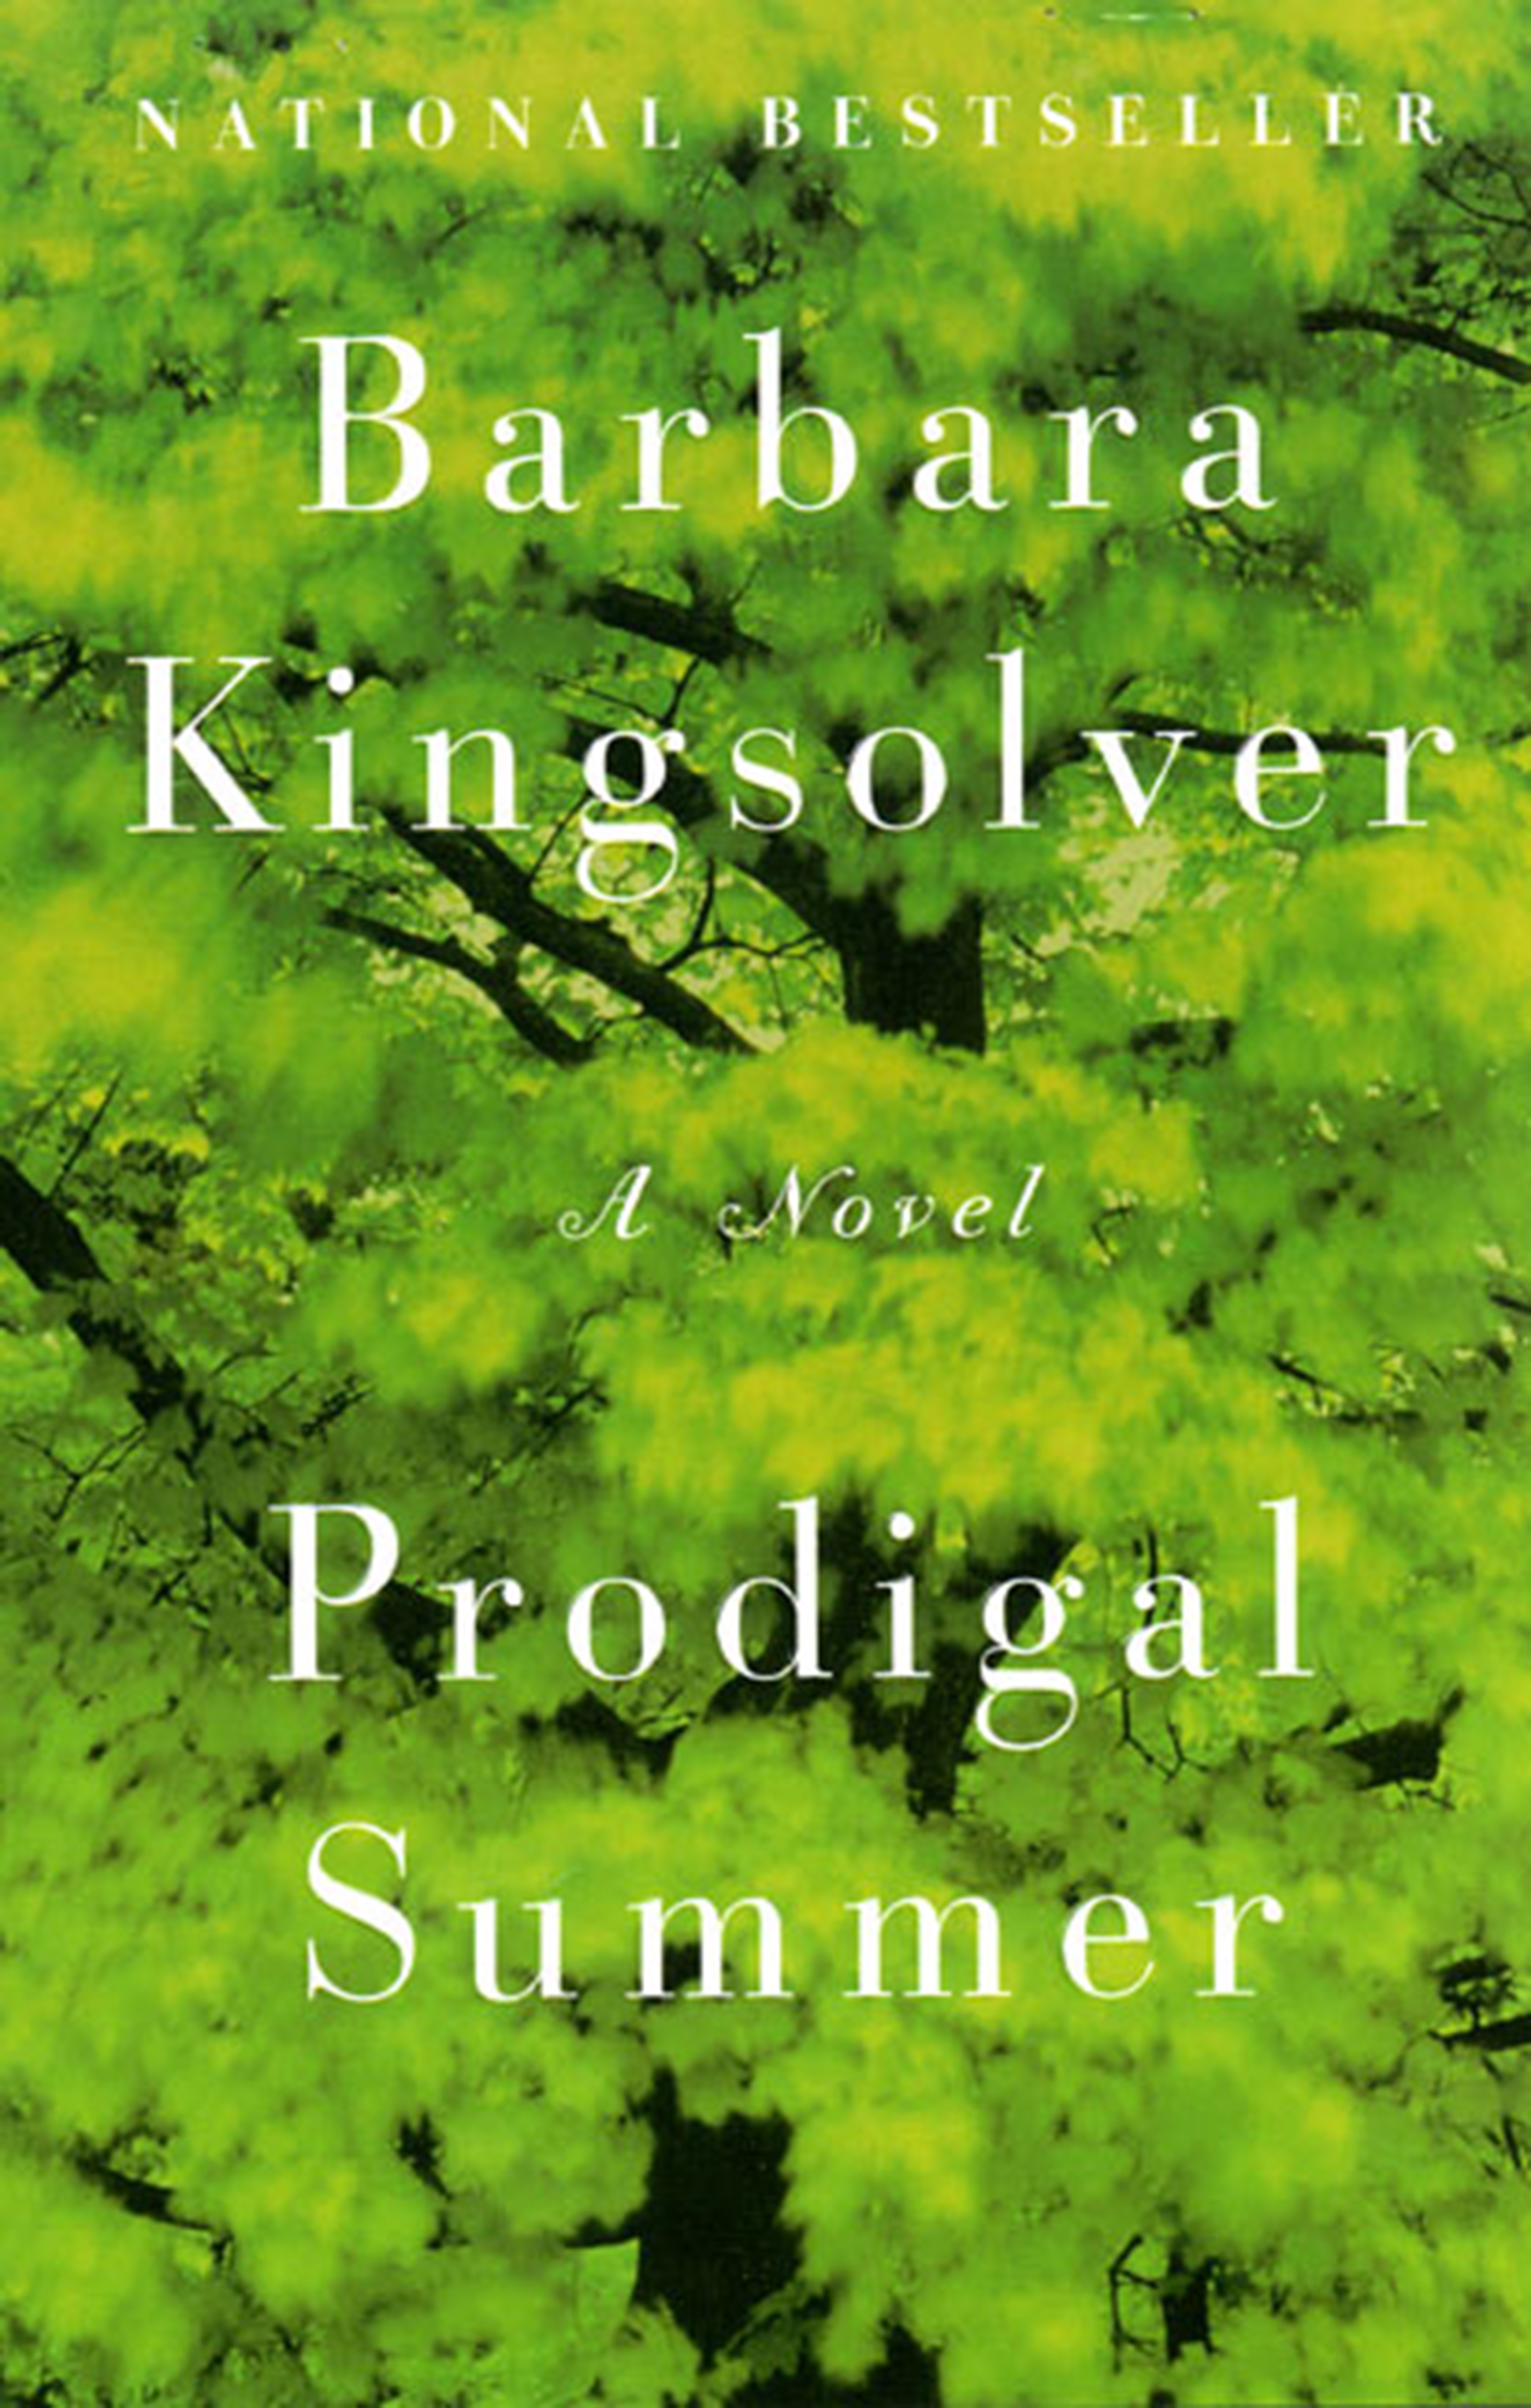 the changeable nature of life in the bean trees by barbara king solver